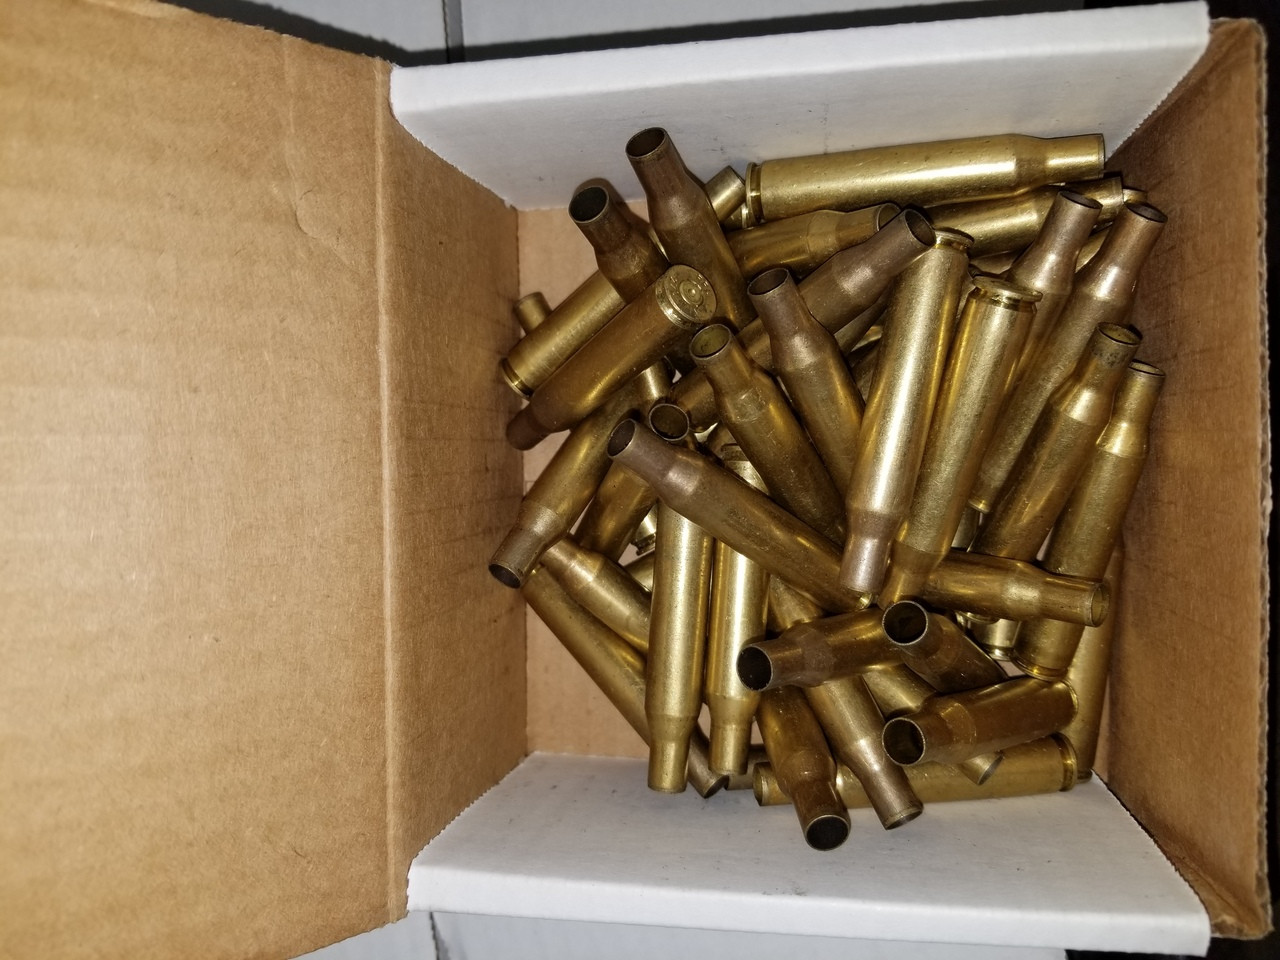 270 Win Once Fired Brass Casings Raw Not Washed 50 pieces